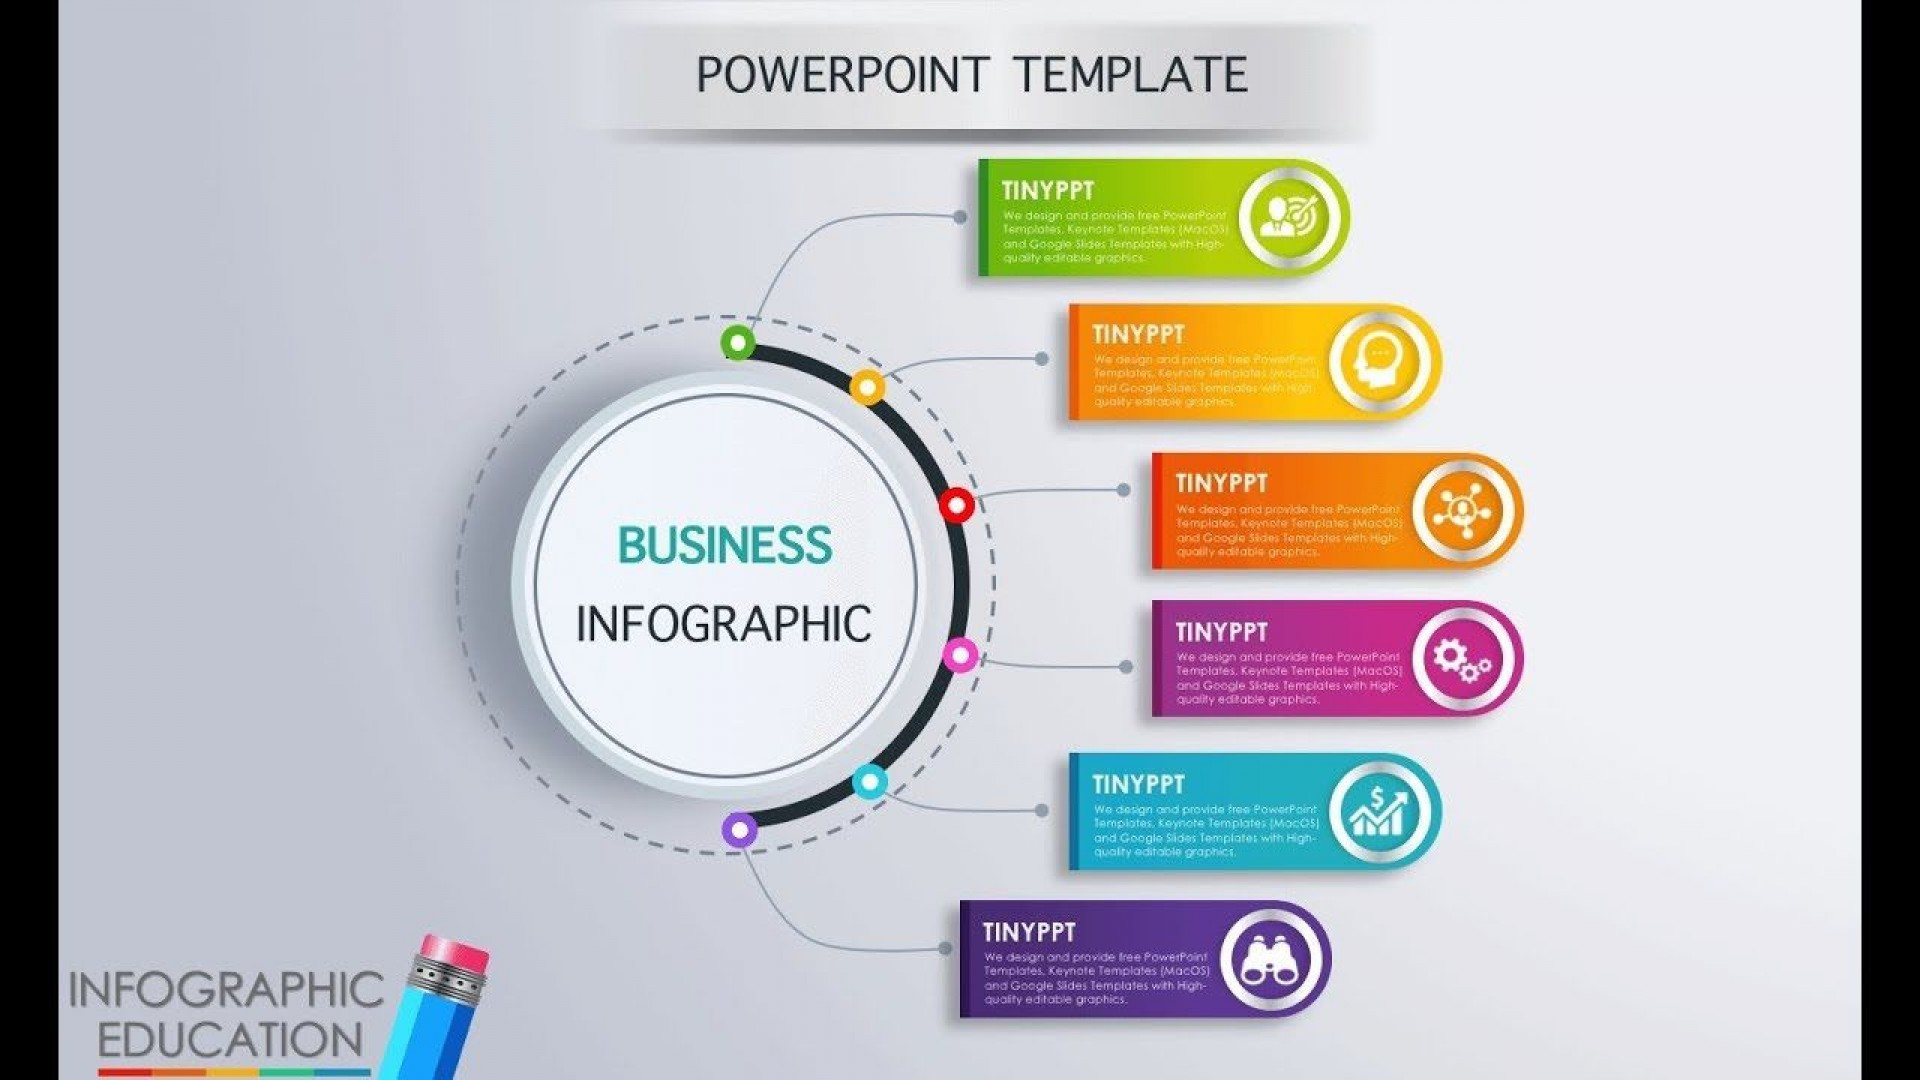 004 Dreaded 3d Animated Powerpoint Template Free Download 2010 Picture 1920